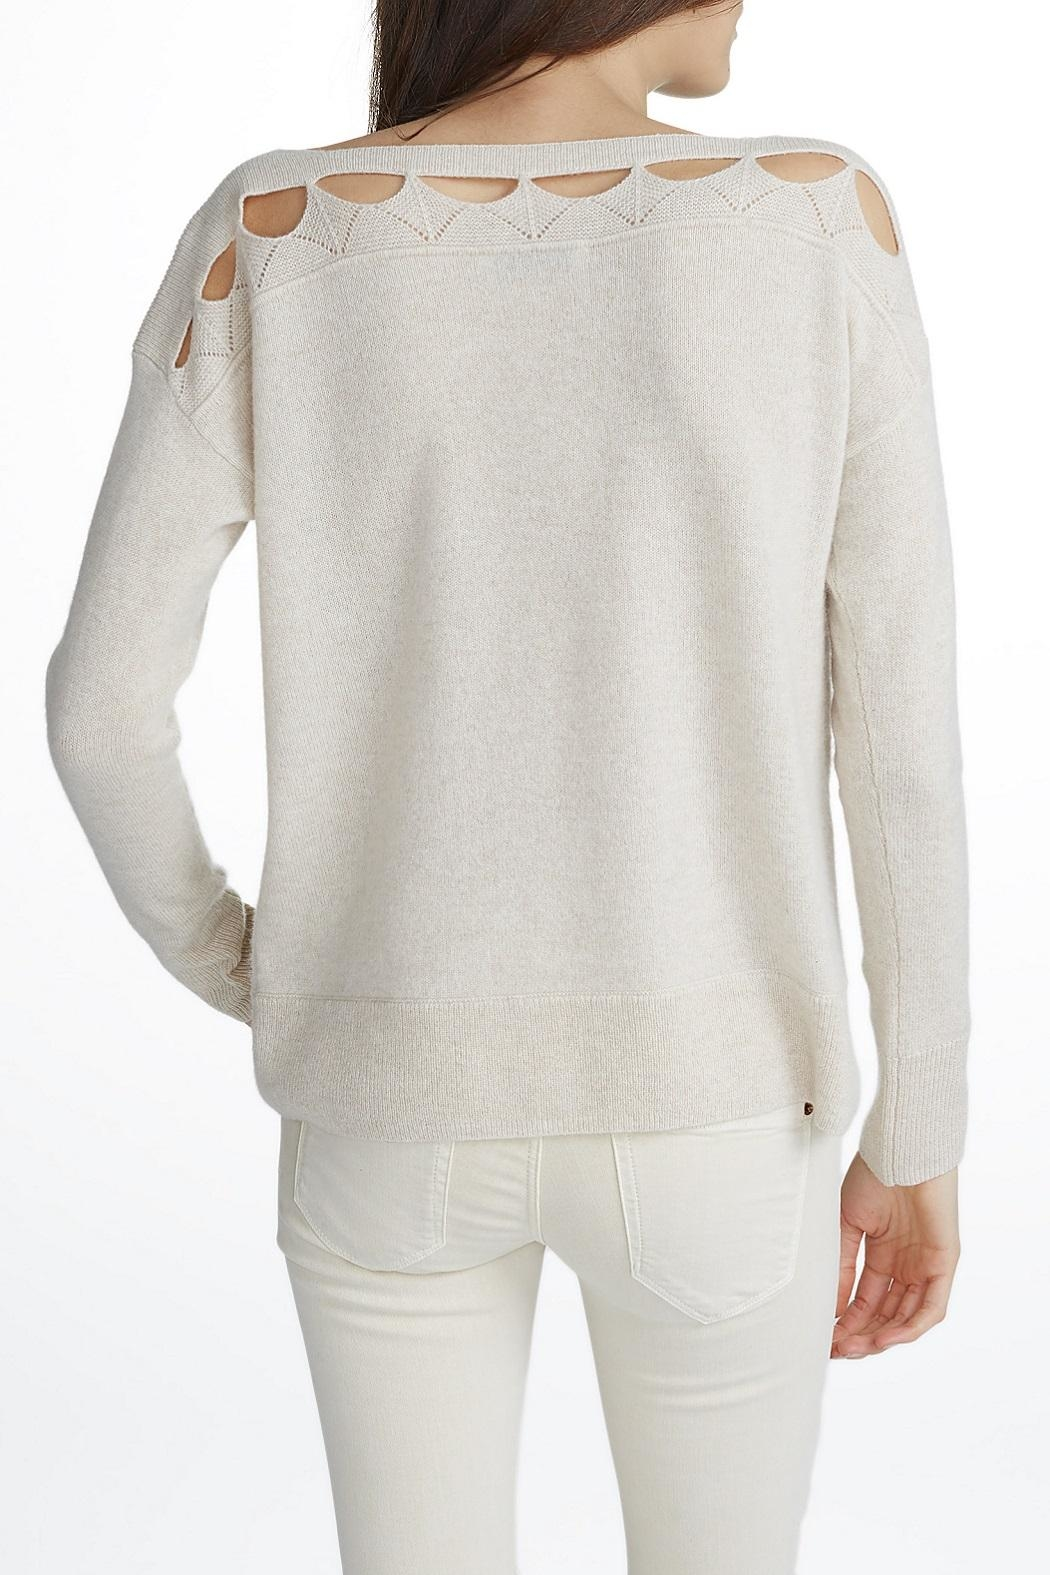 White + Warren Cashmere Cut Out Top - Front Full Image